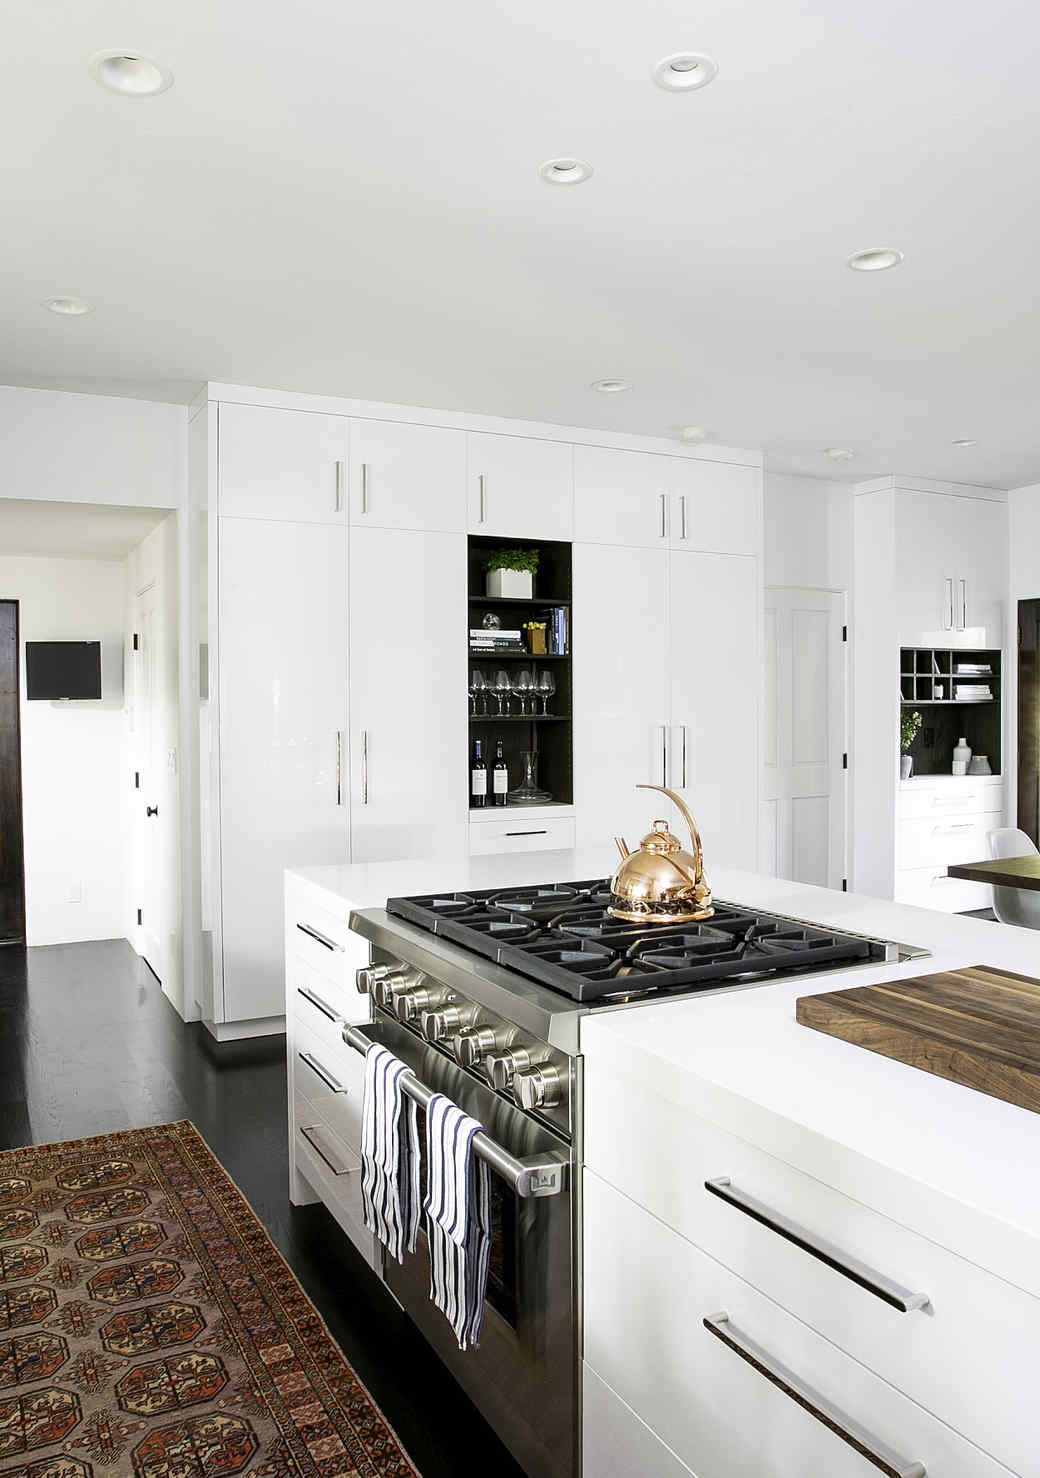 Kitchen Decor Ideas You Should Steal from Christina Applegate's Kitchen